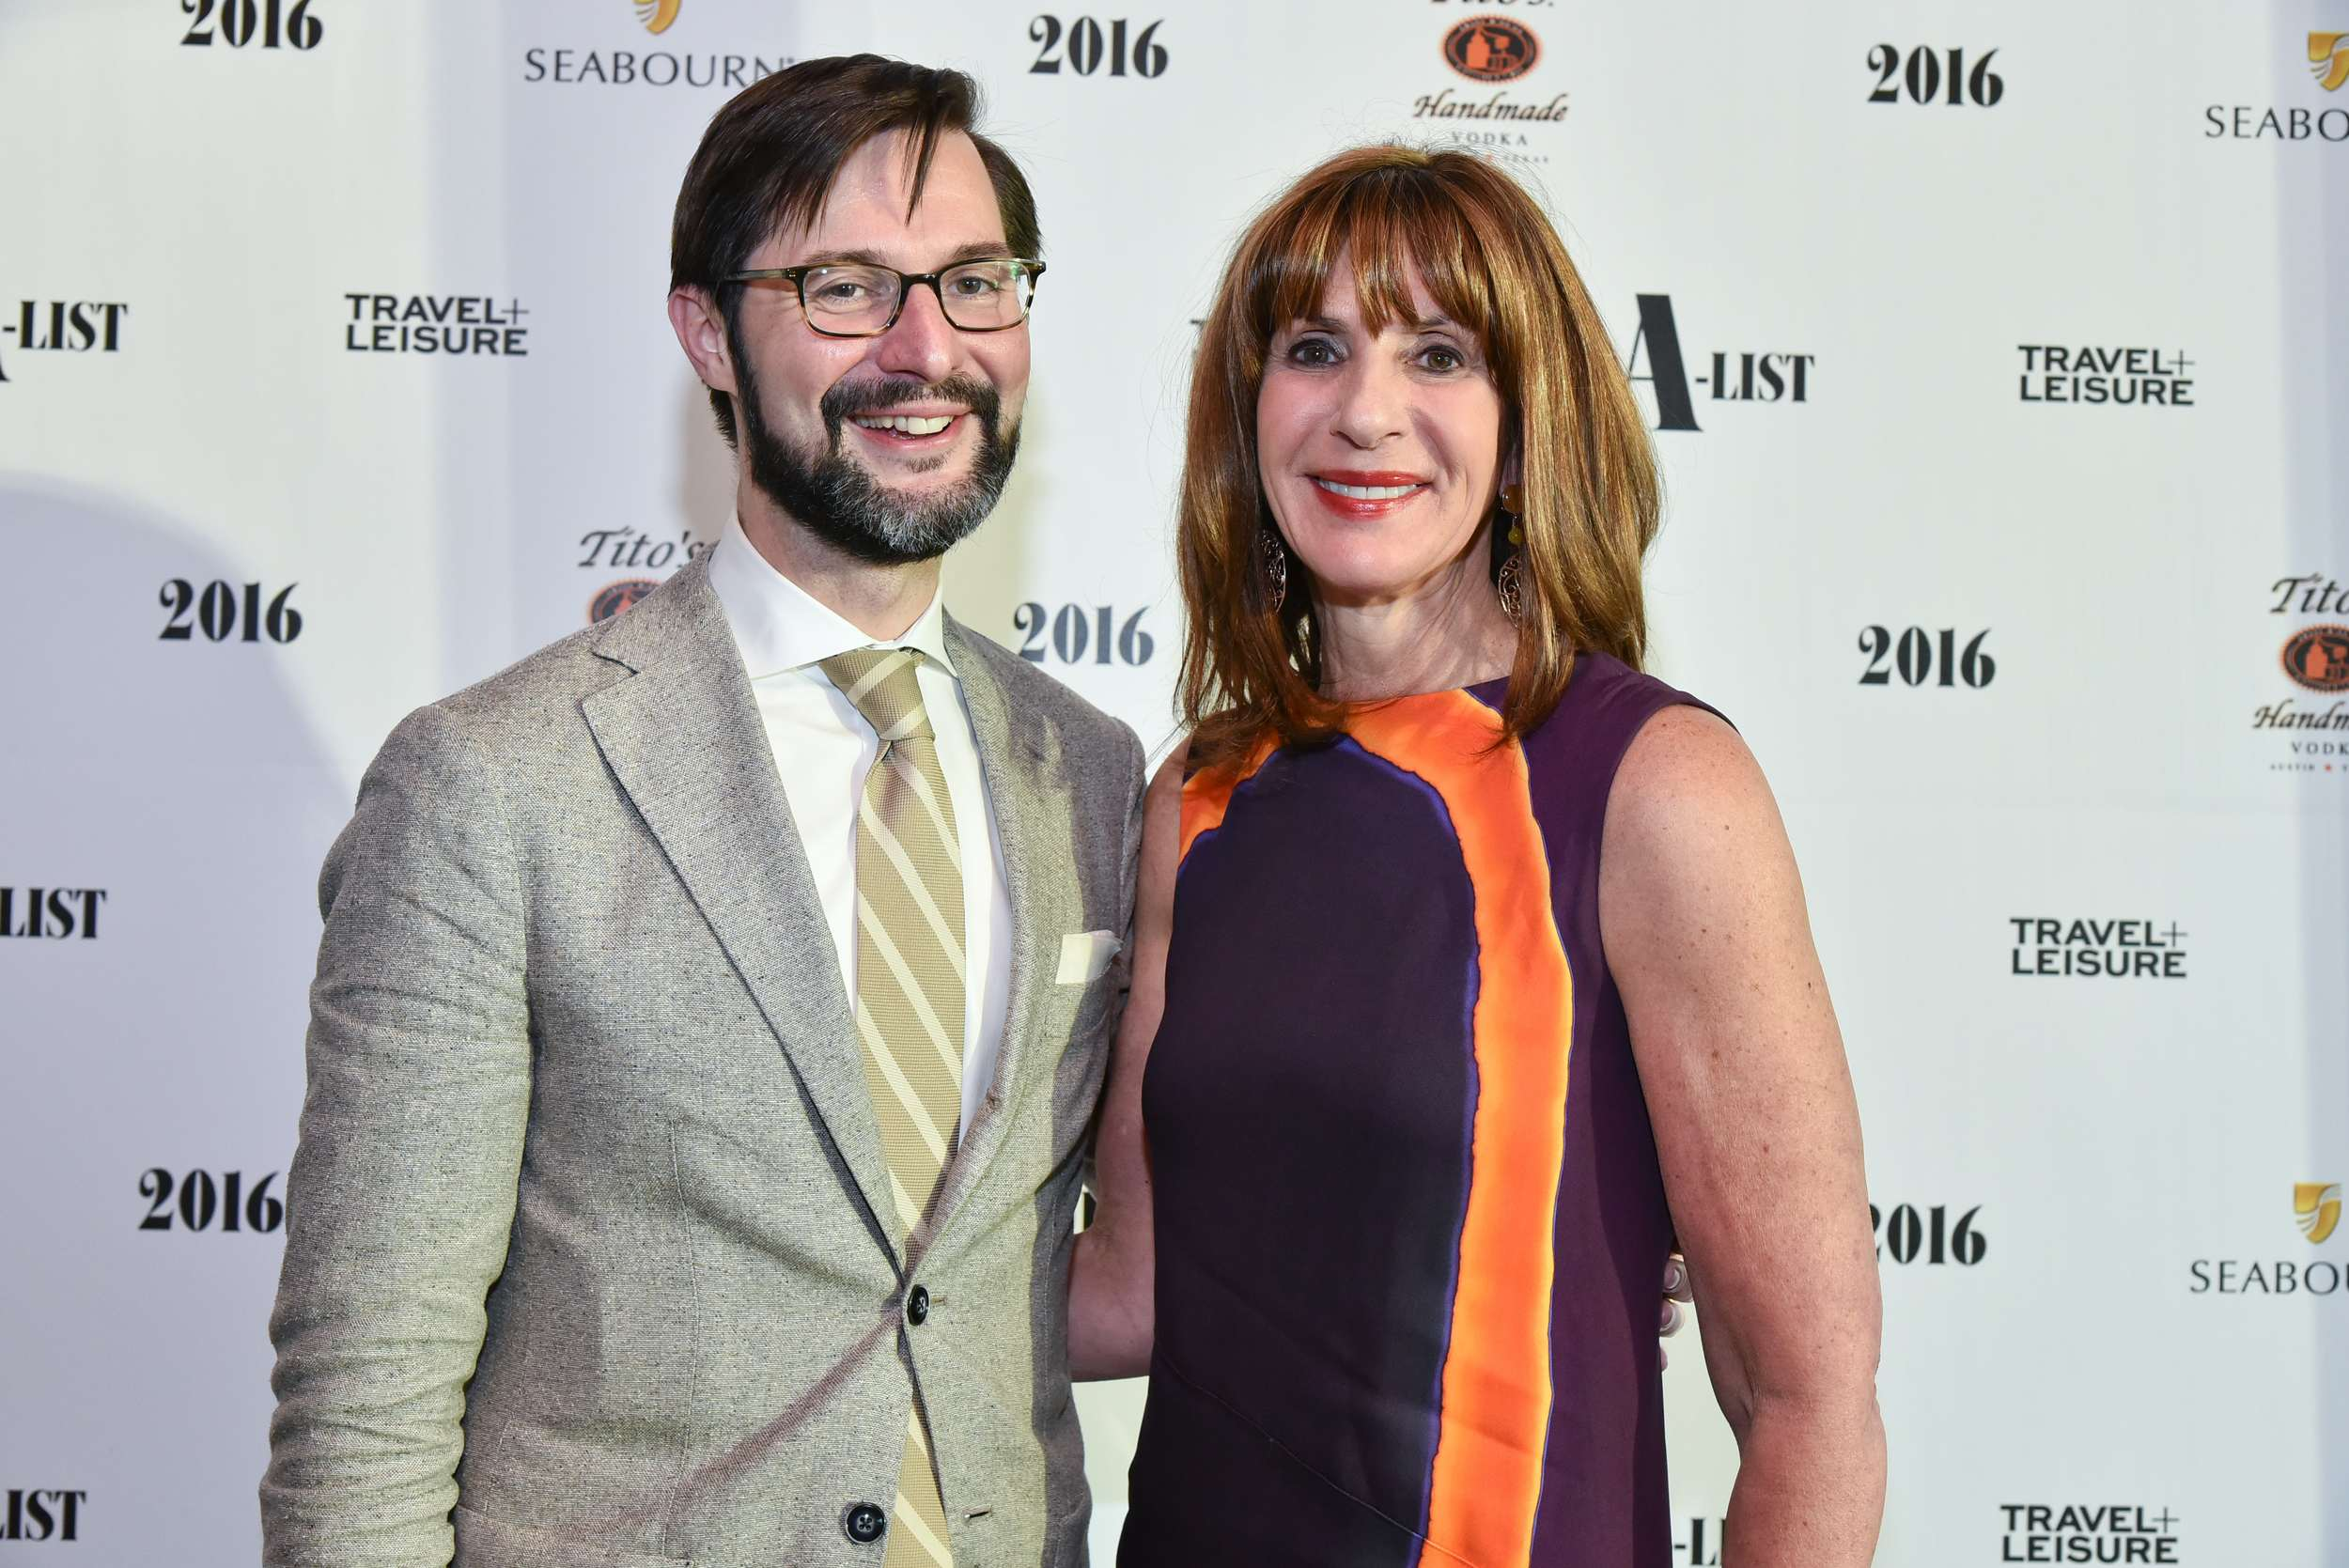 Susan Sparks with Nathan Lump, Editor,Travel + Leisure at the 2016 Travel + Leisure A-List reception August 9th during Virtuoso Week at Hyde Bellagio in Las Vegas.